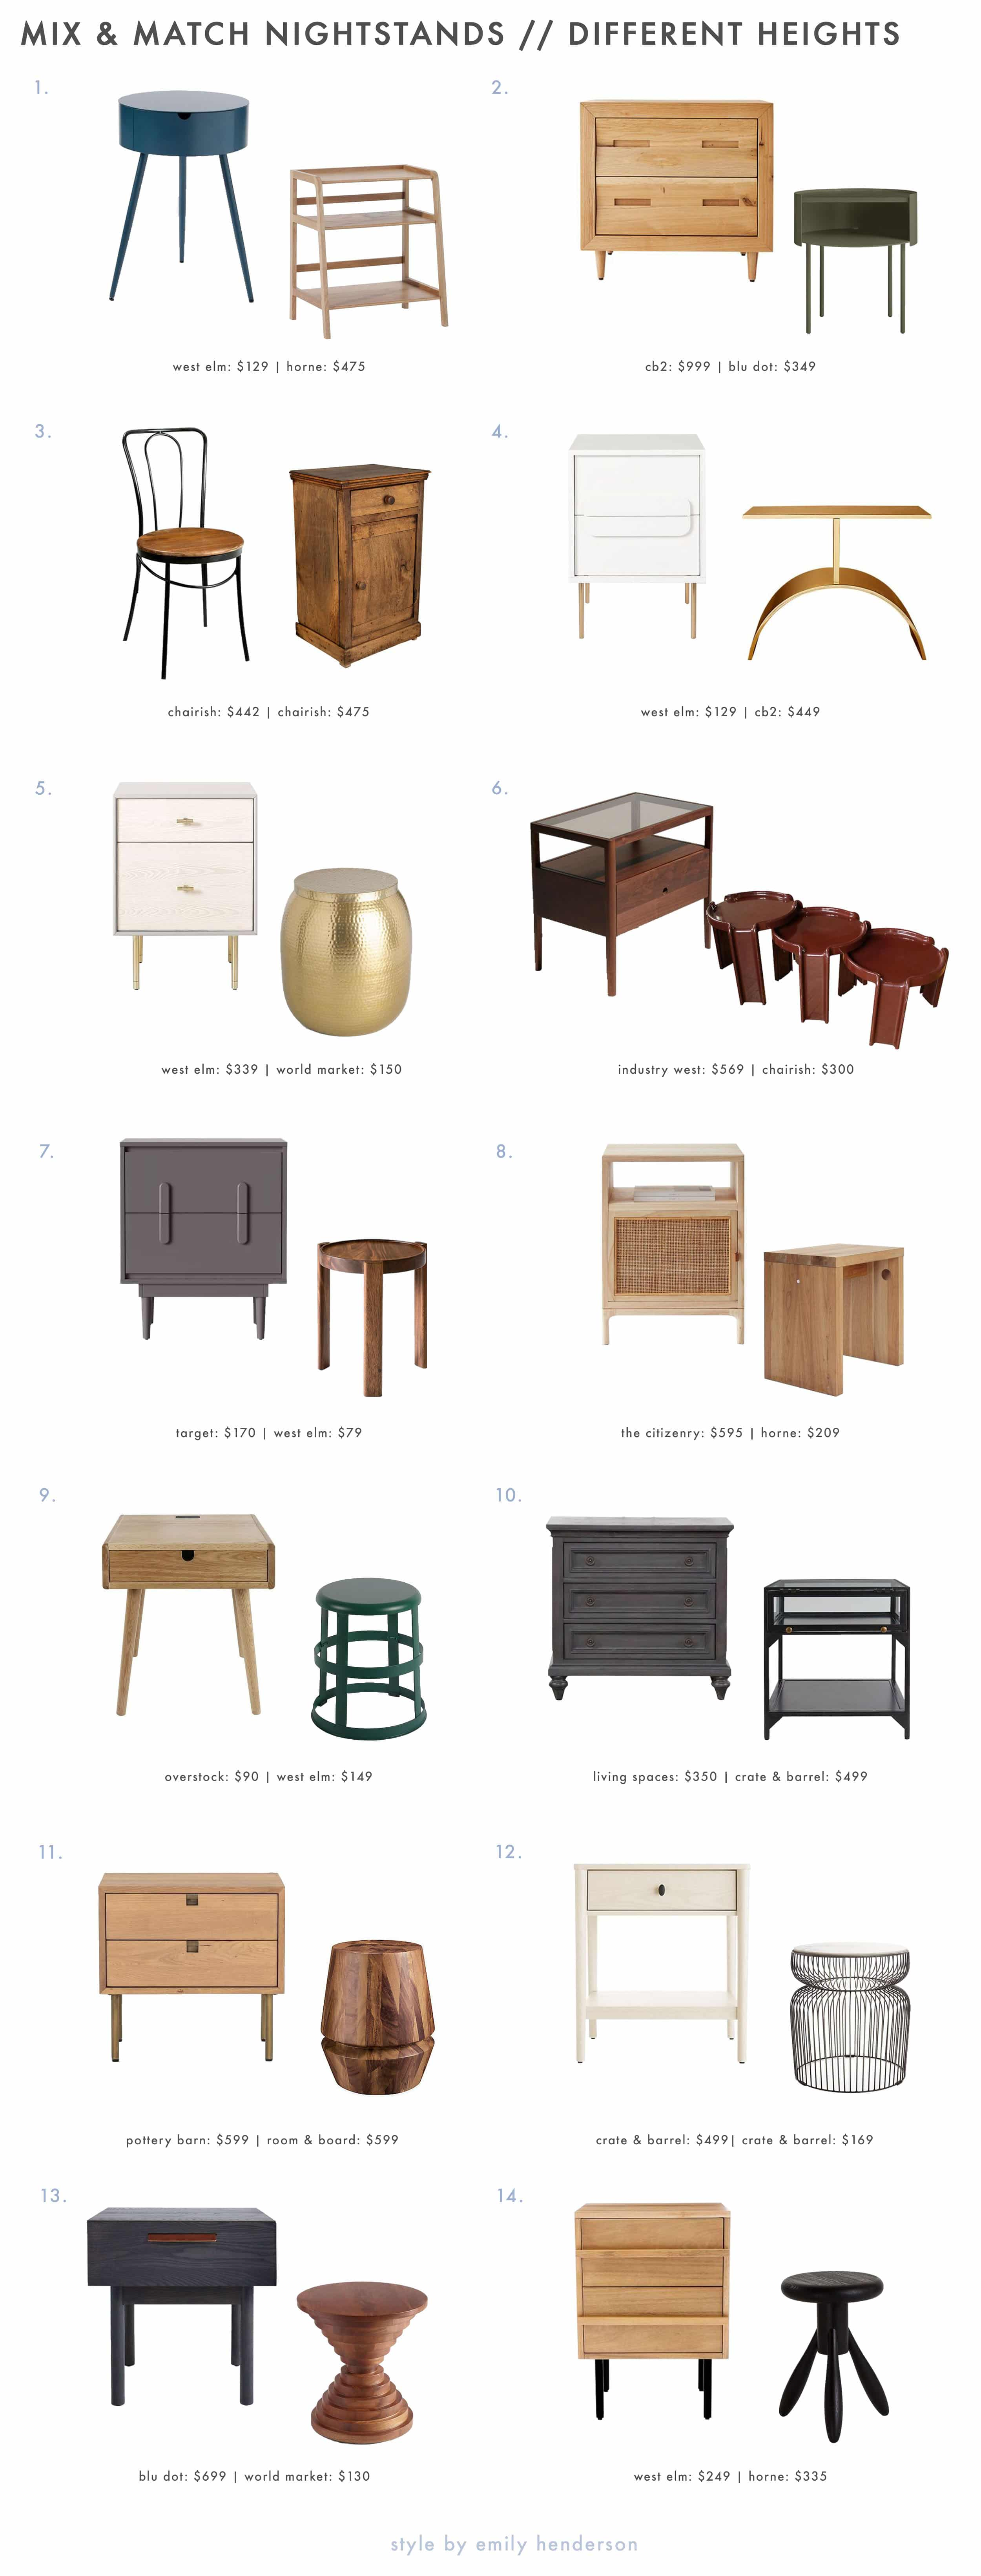 How To Mix And Match Nightstands Like A Designer